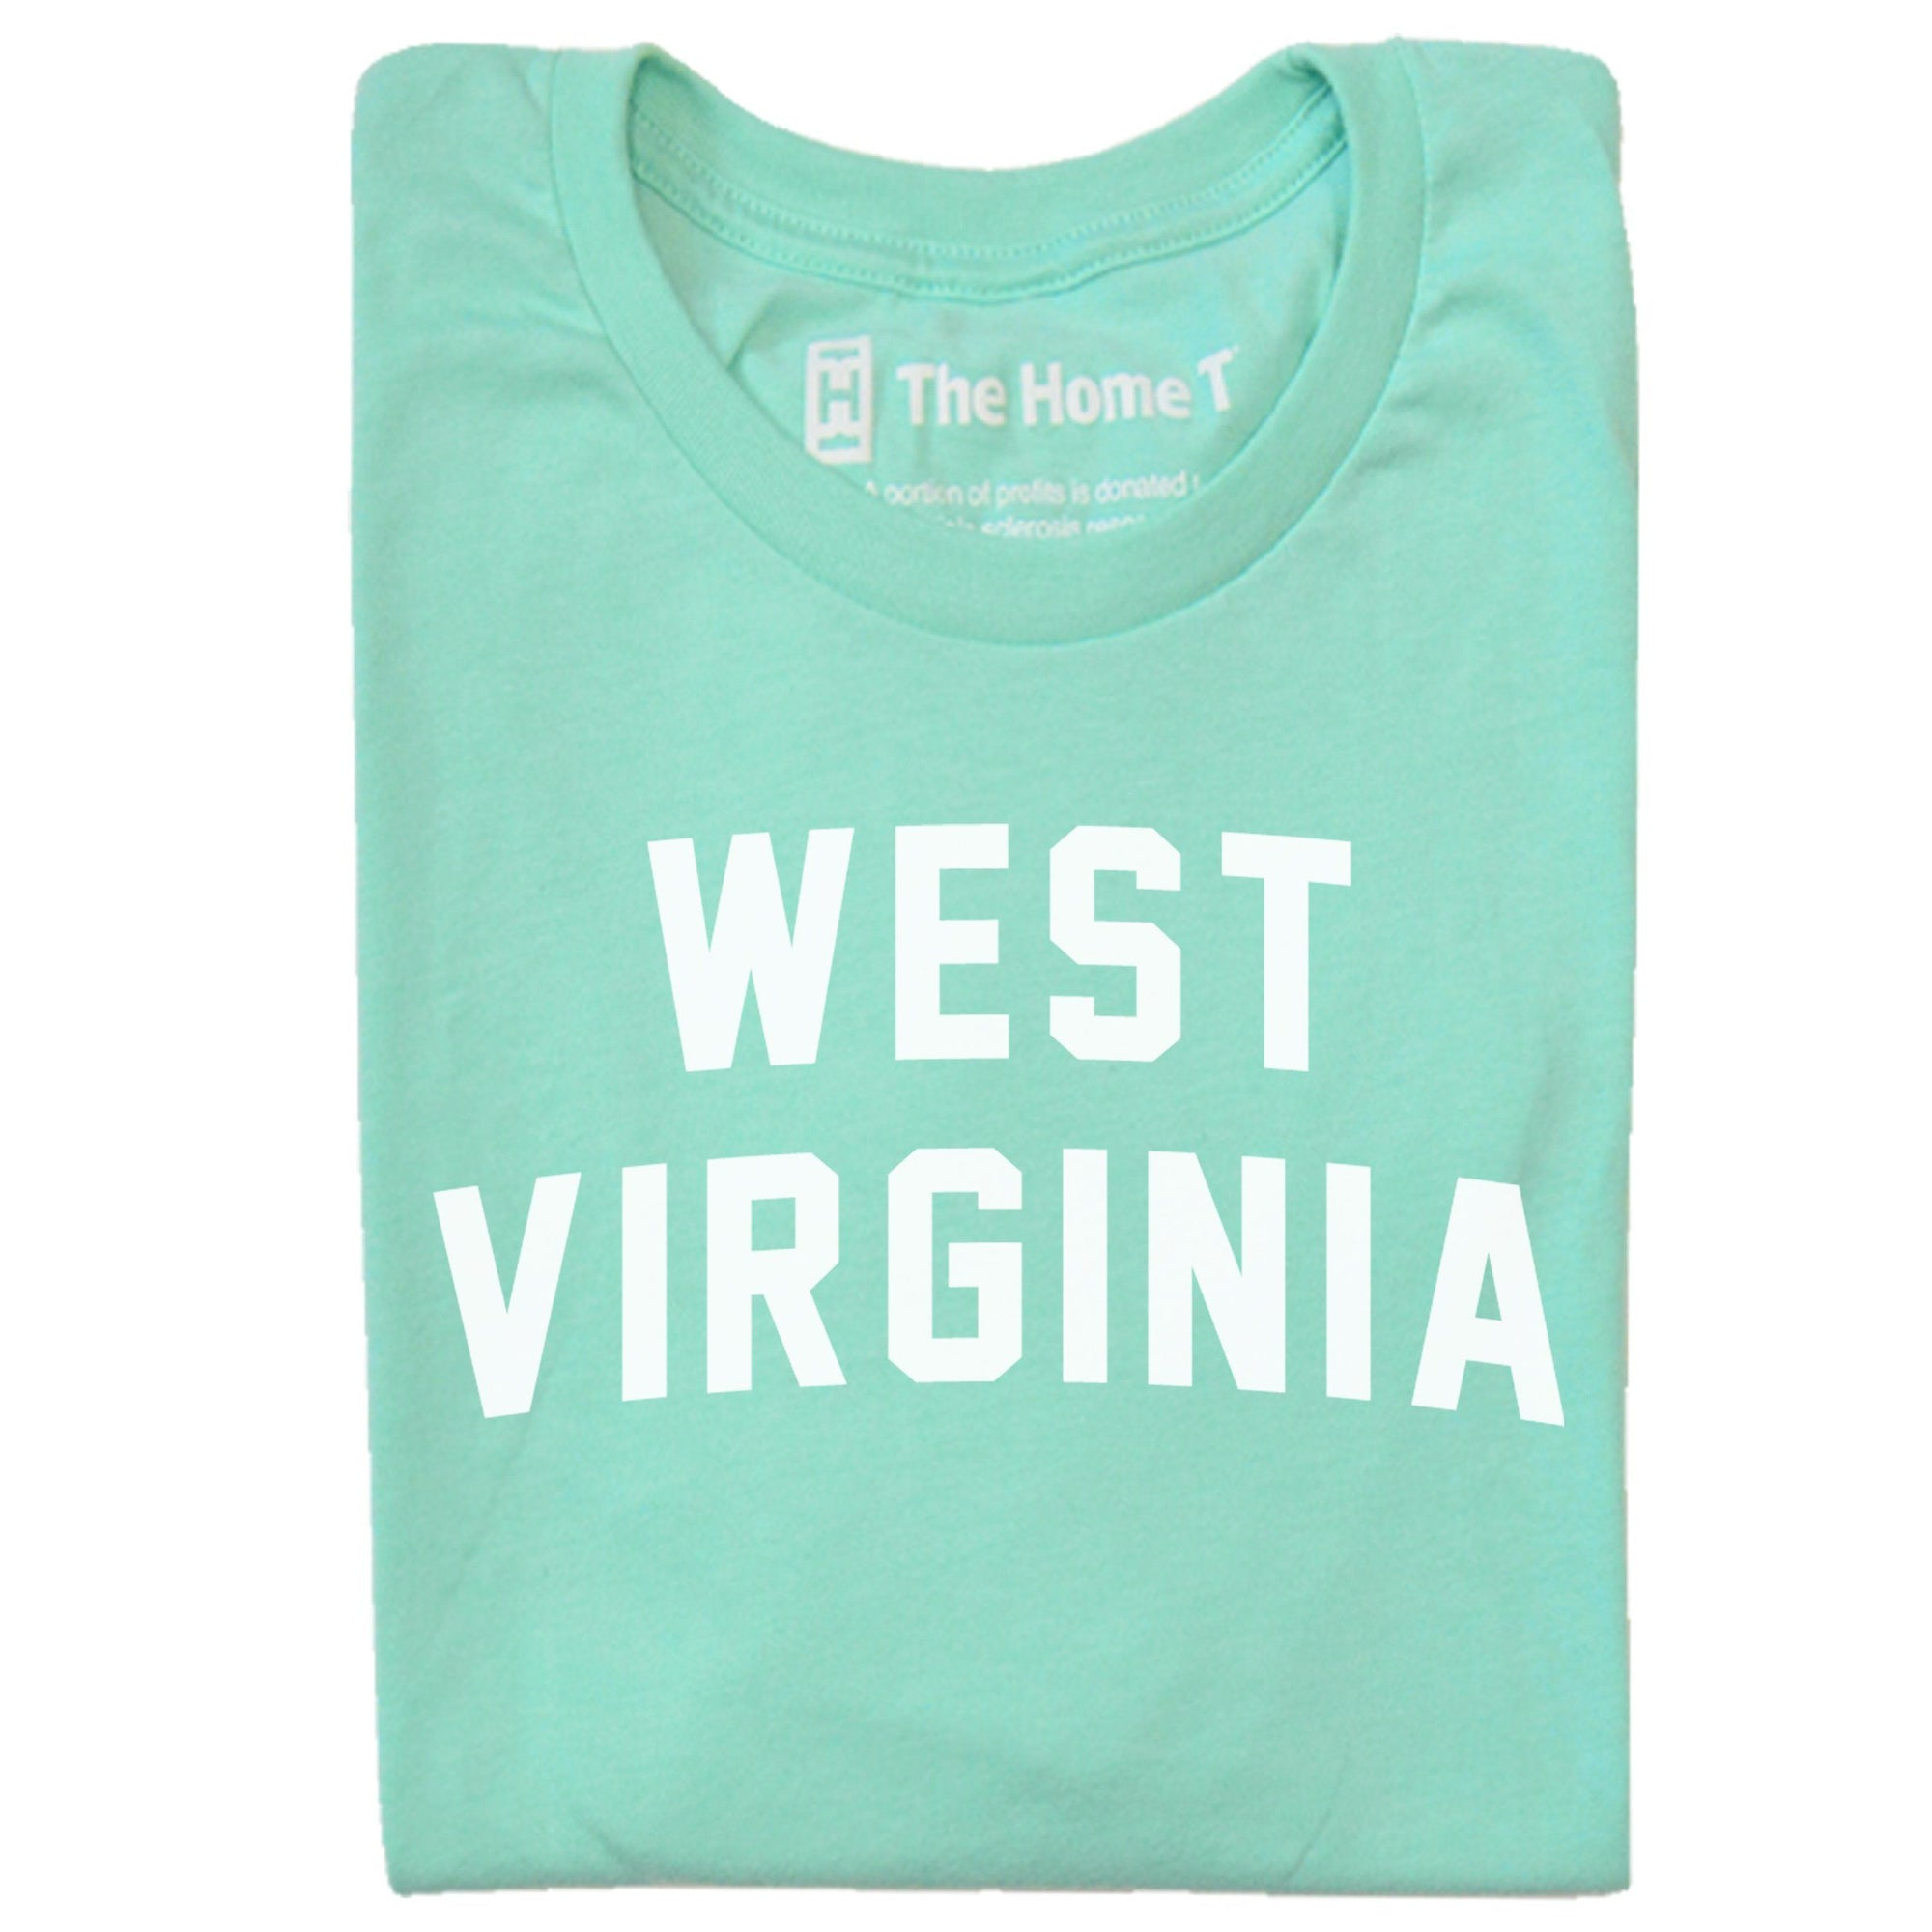 West Virginia Arched The Home T XS Mint